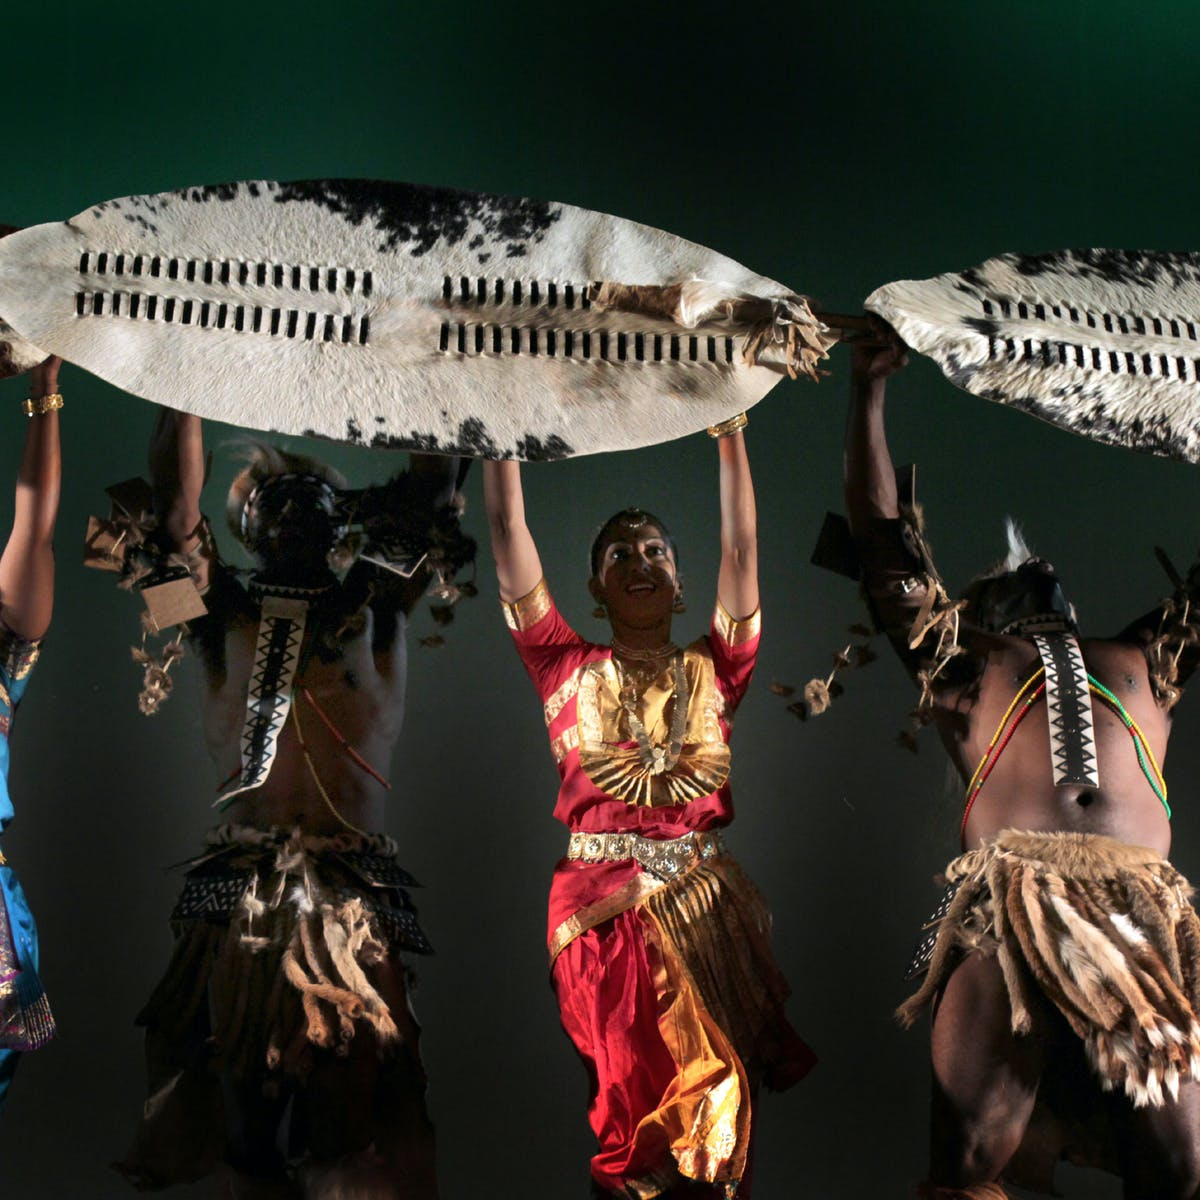 African dance festival that's been one step ahead through the decades